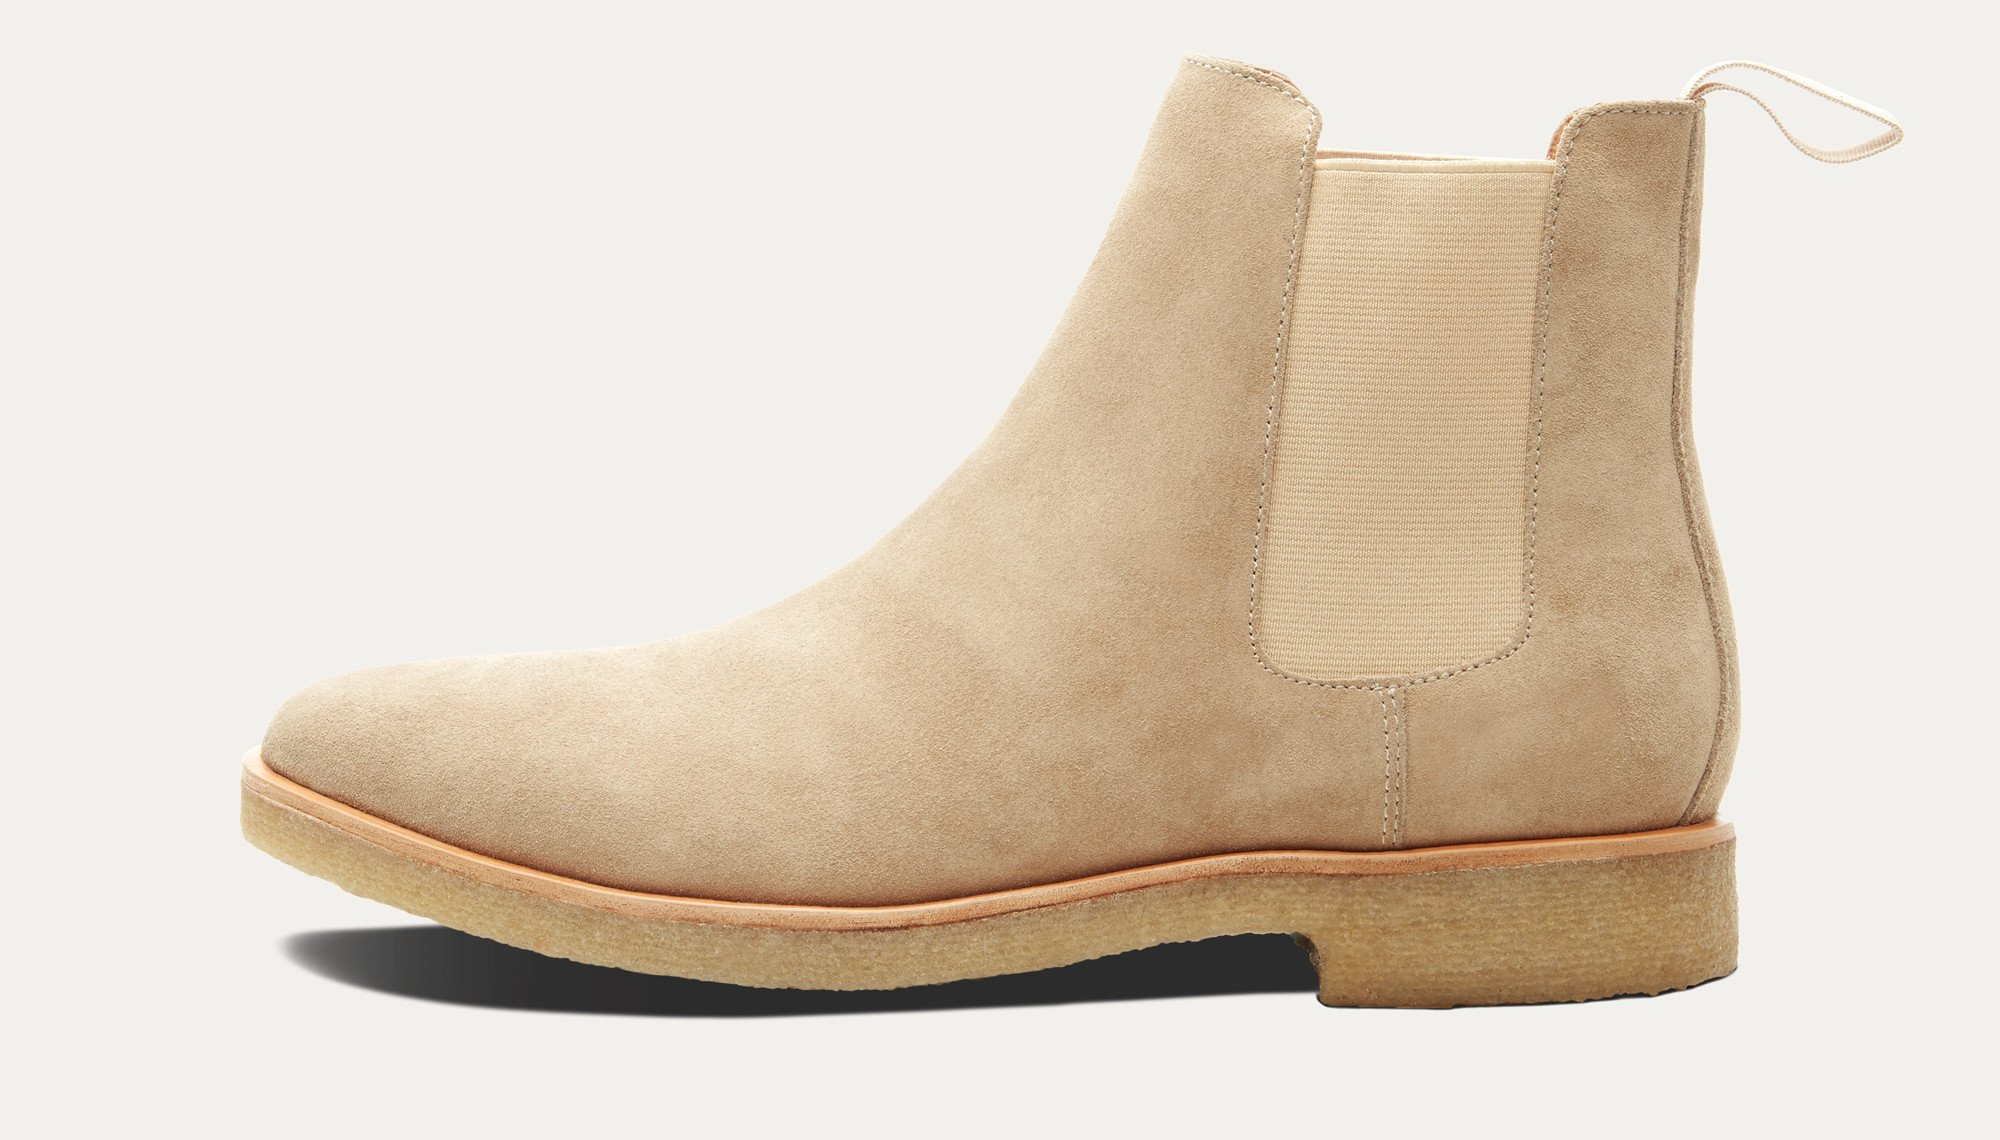 houston chelsea boot houston chelsea boot ... ICOCYBC